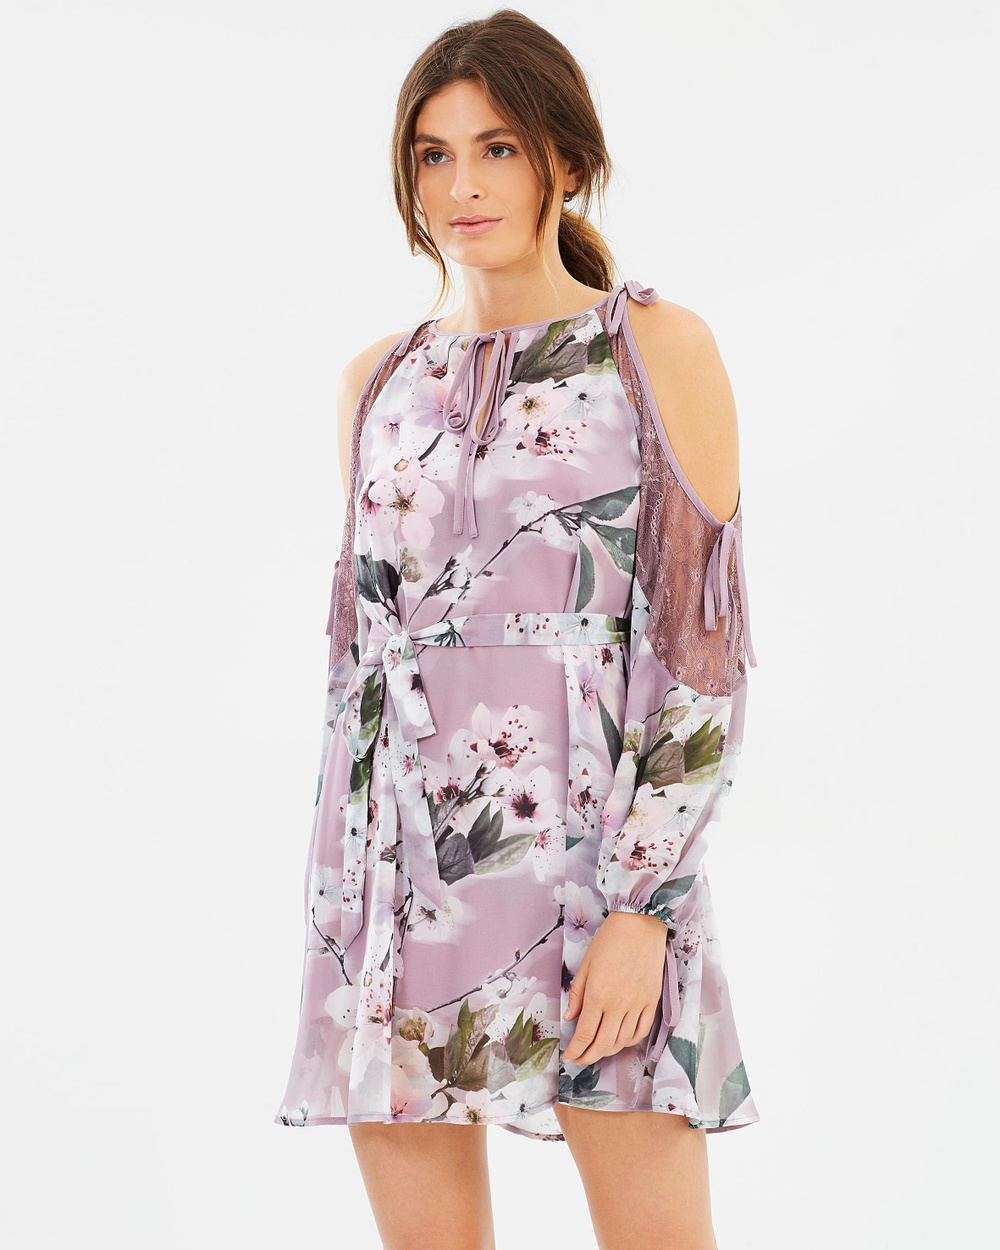 We Are Kindred Holly Cold Shoulder Dress Dresses Musk Cherry Blossom Holly Cold Shoulder Dress